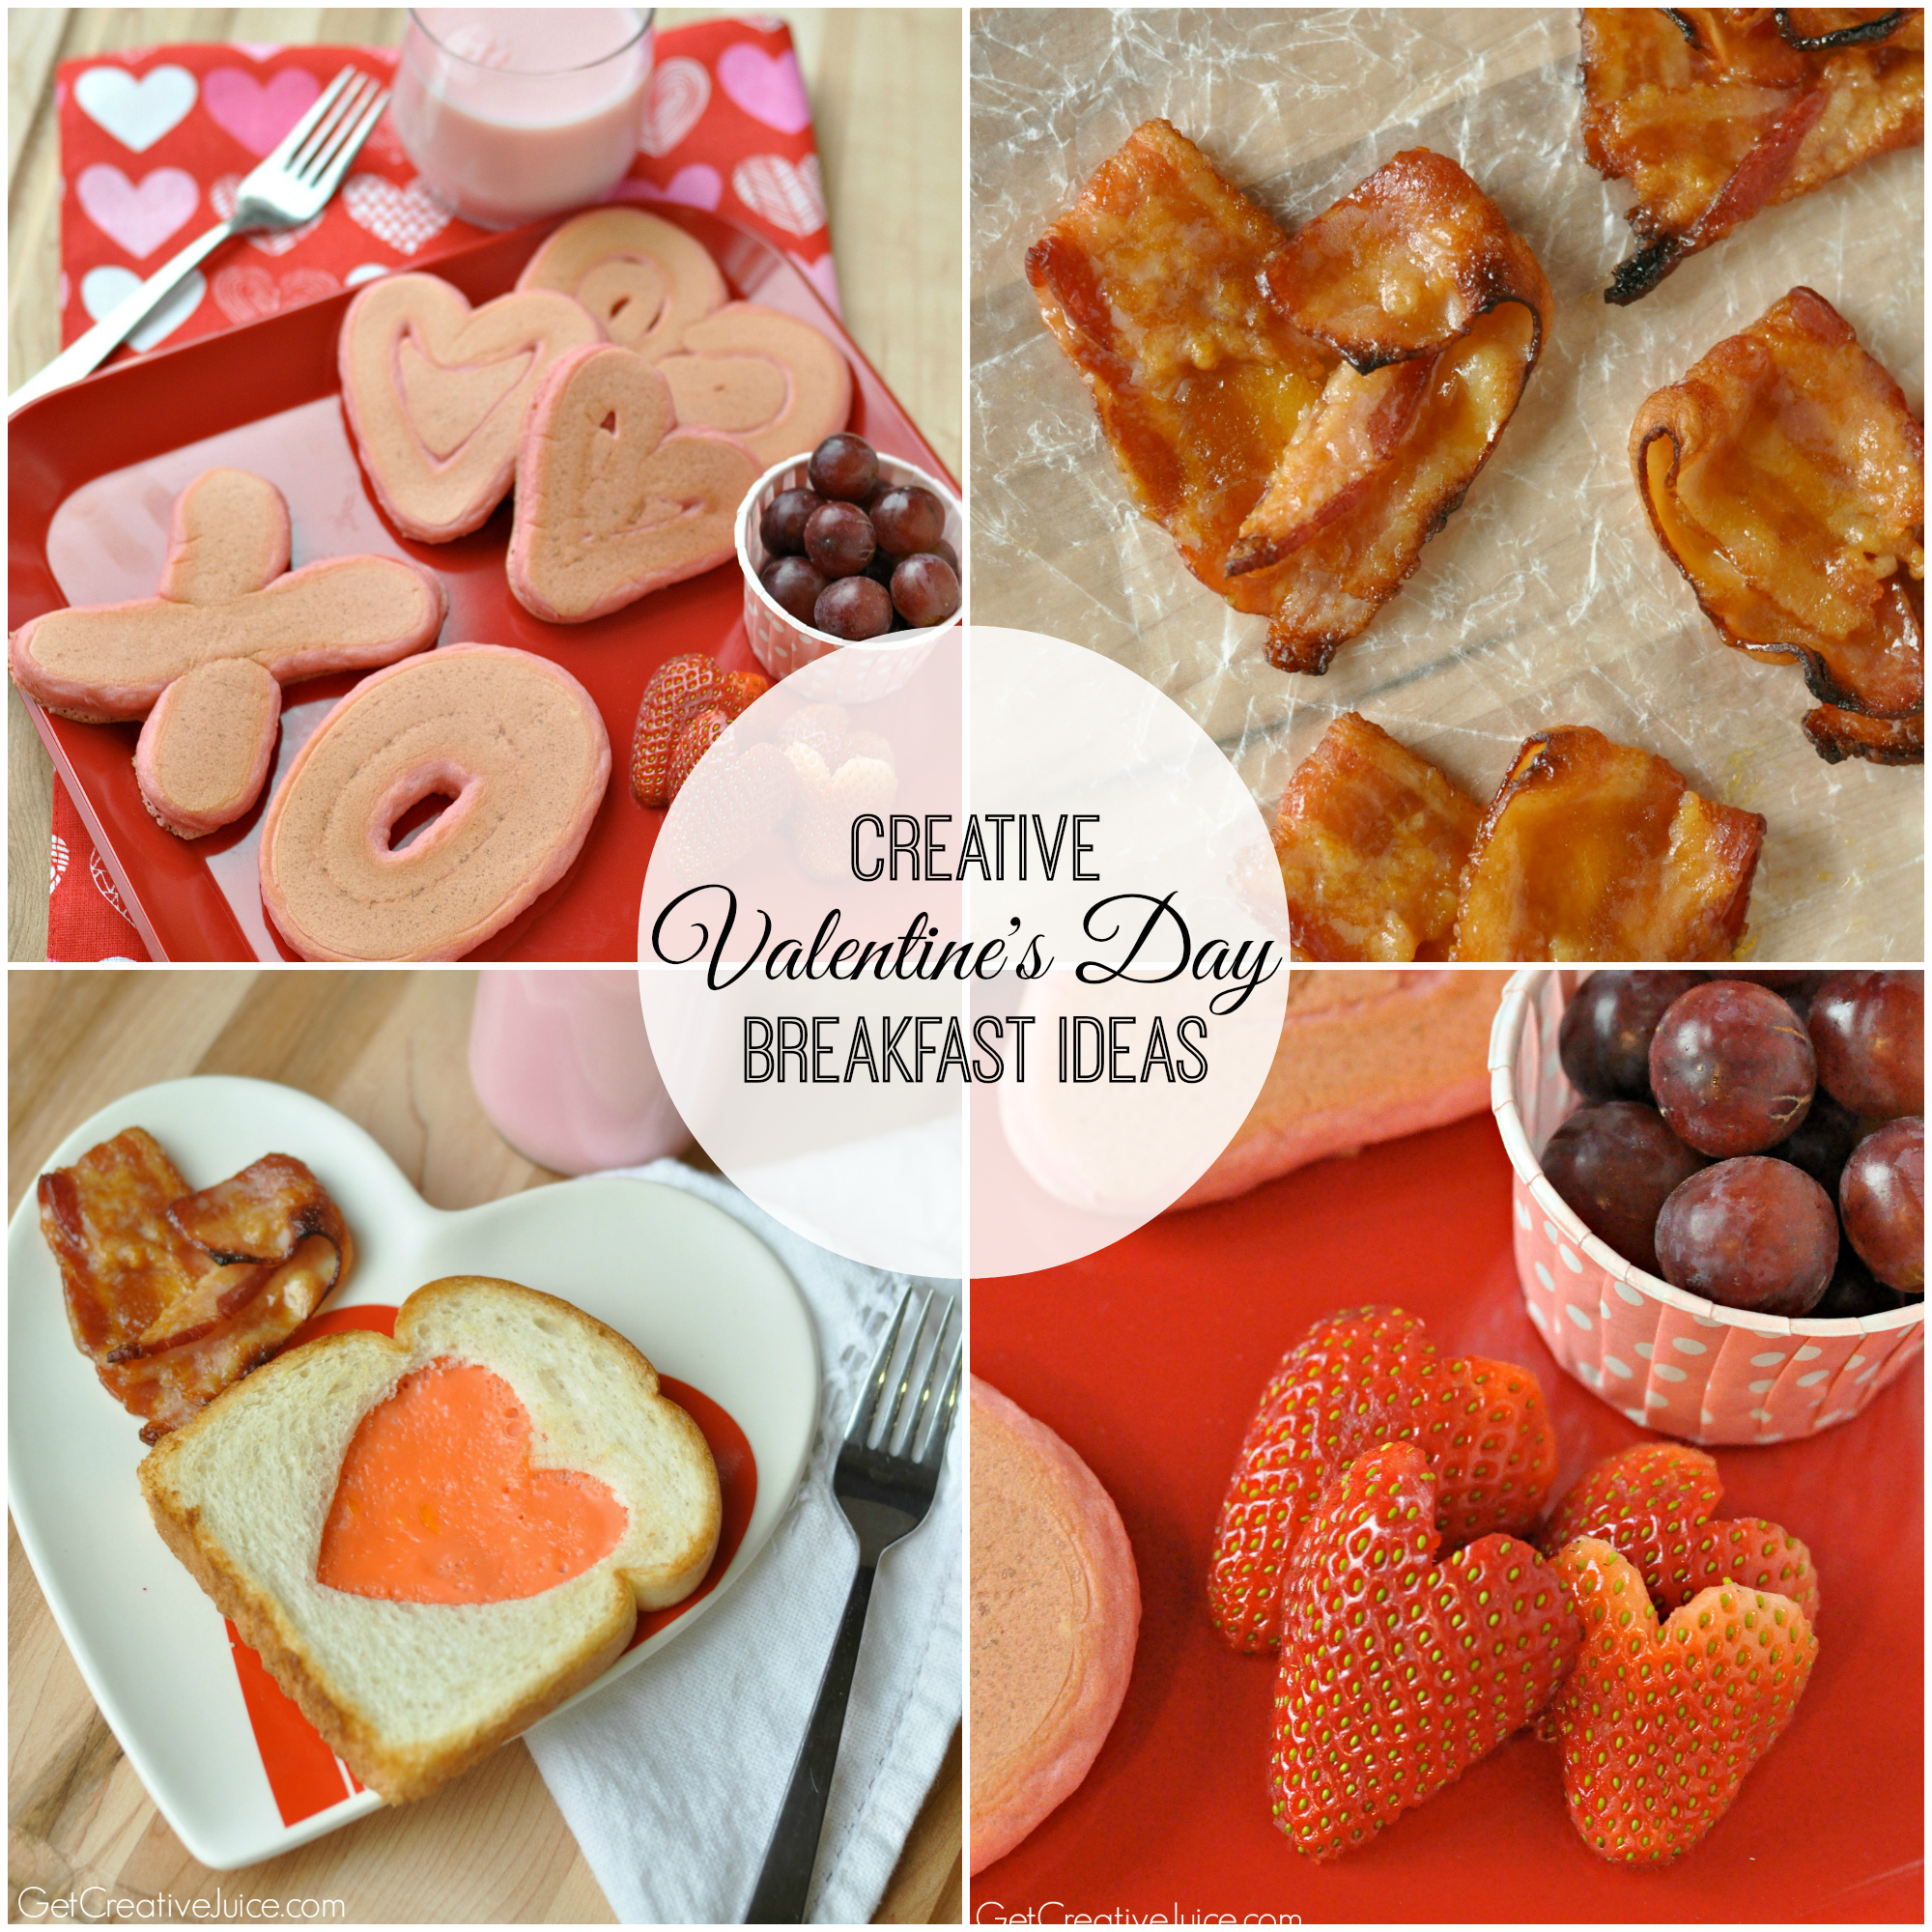 Valentine's Day Breakfast Ideas - Creative Juice